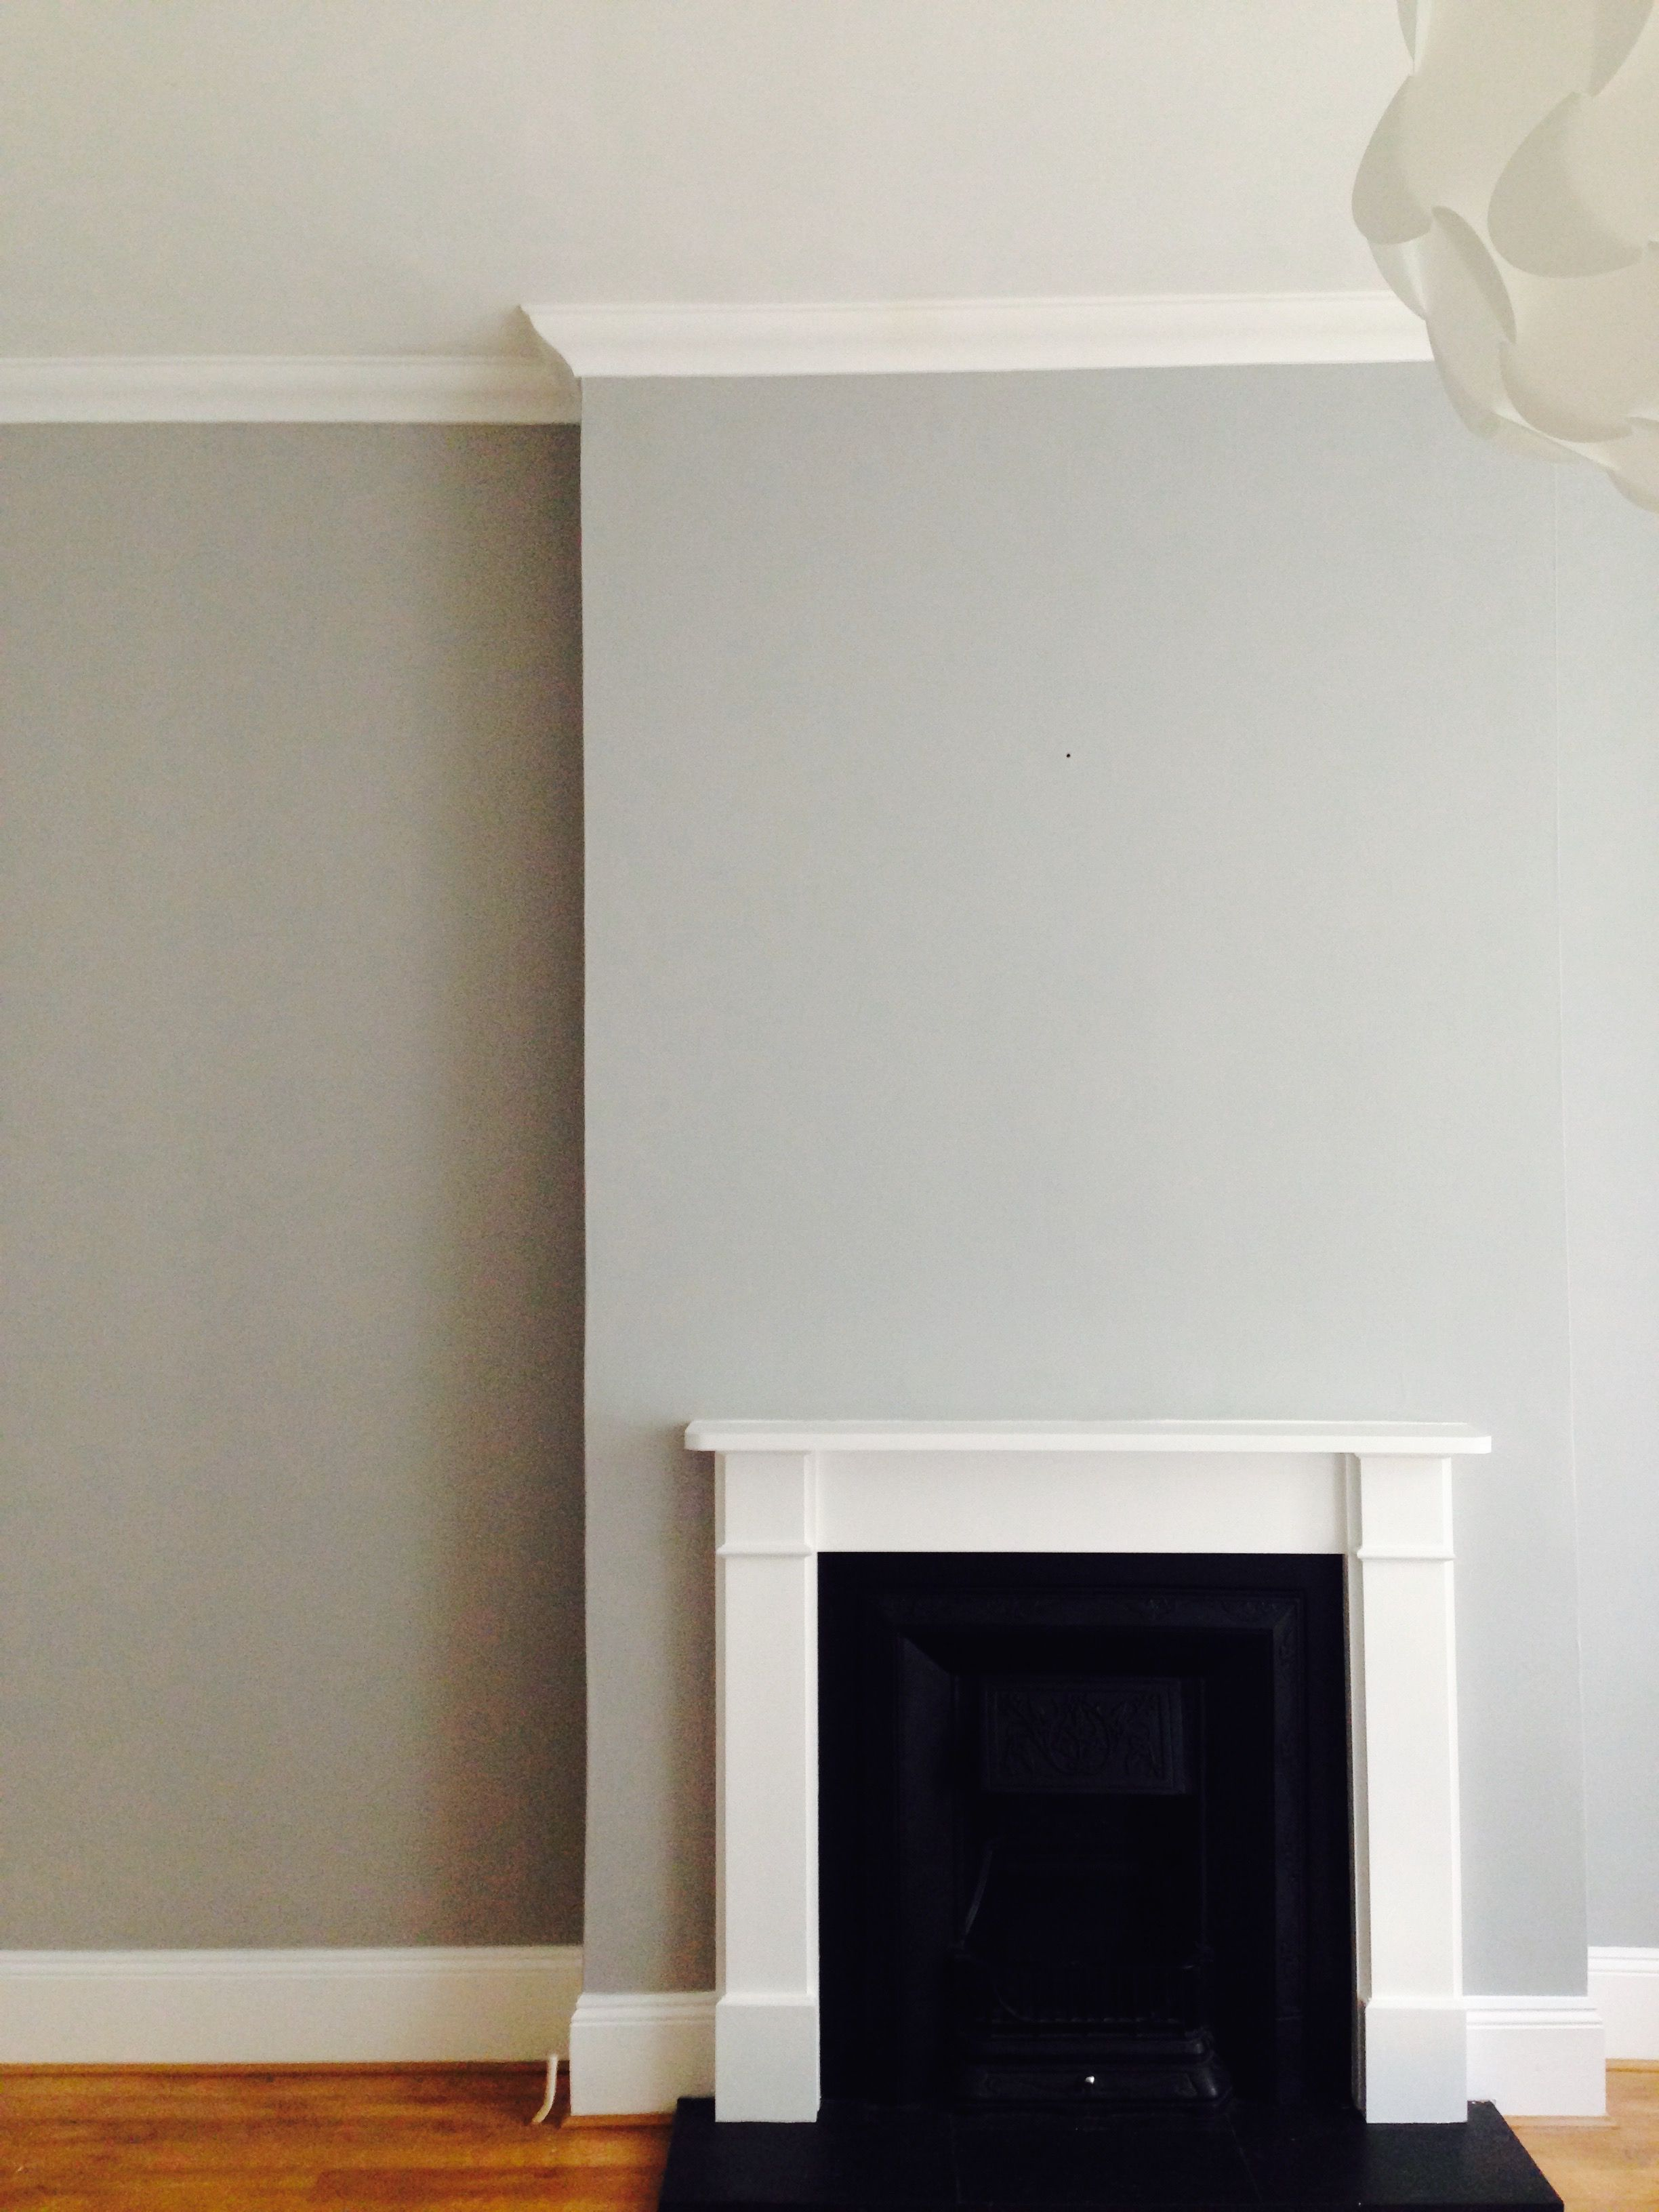 Paint Finish For Living Room Matte Paint Gives A Simple Effect To The Room I Like It Current